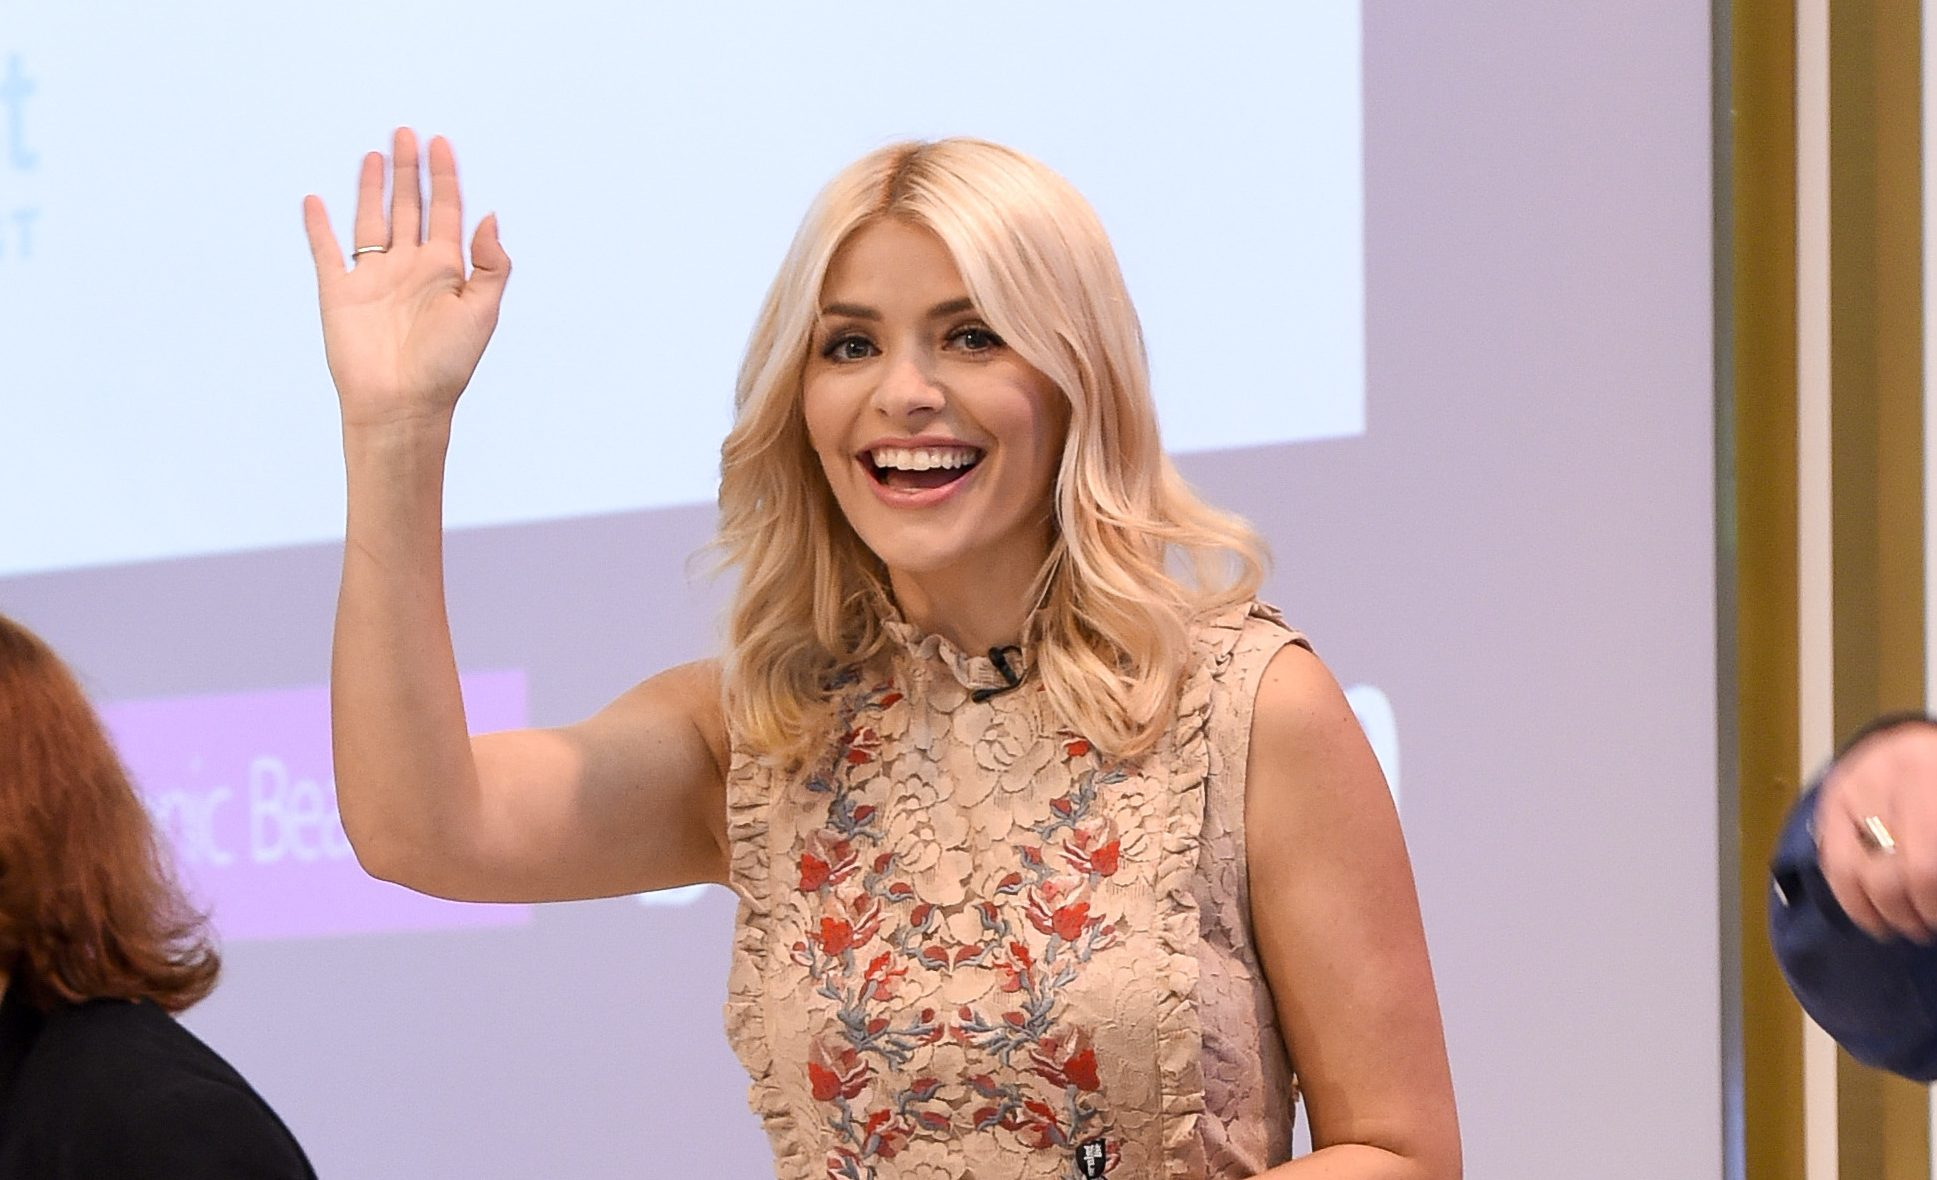 Holly Willoughby shares amazing throwback pic of her acting days